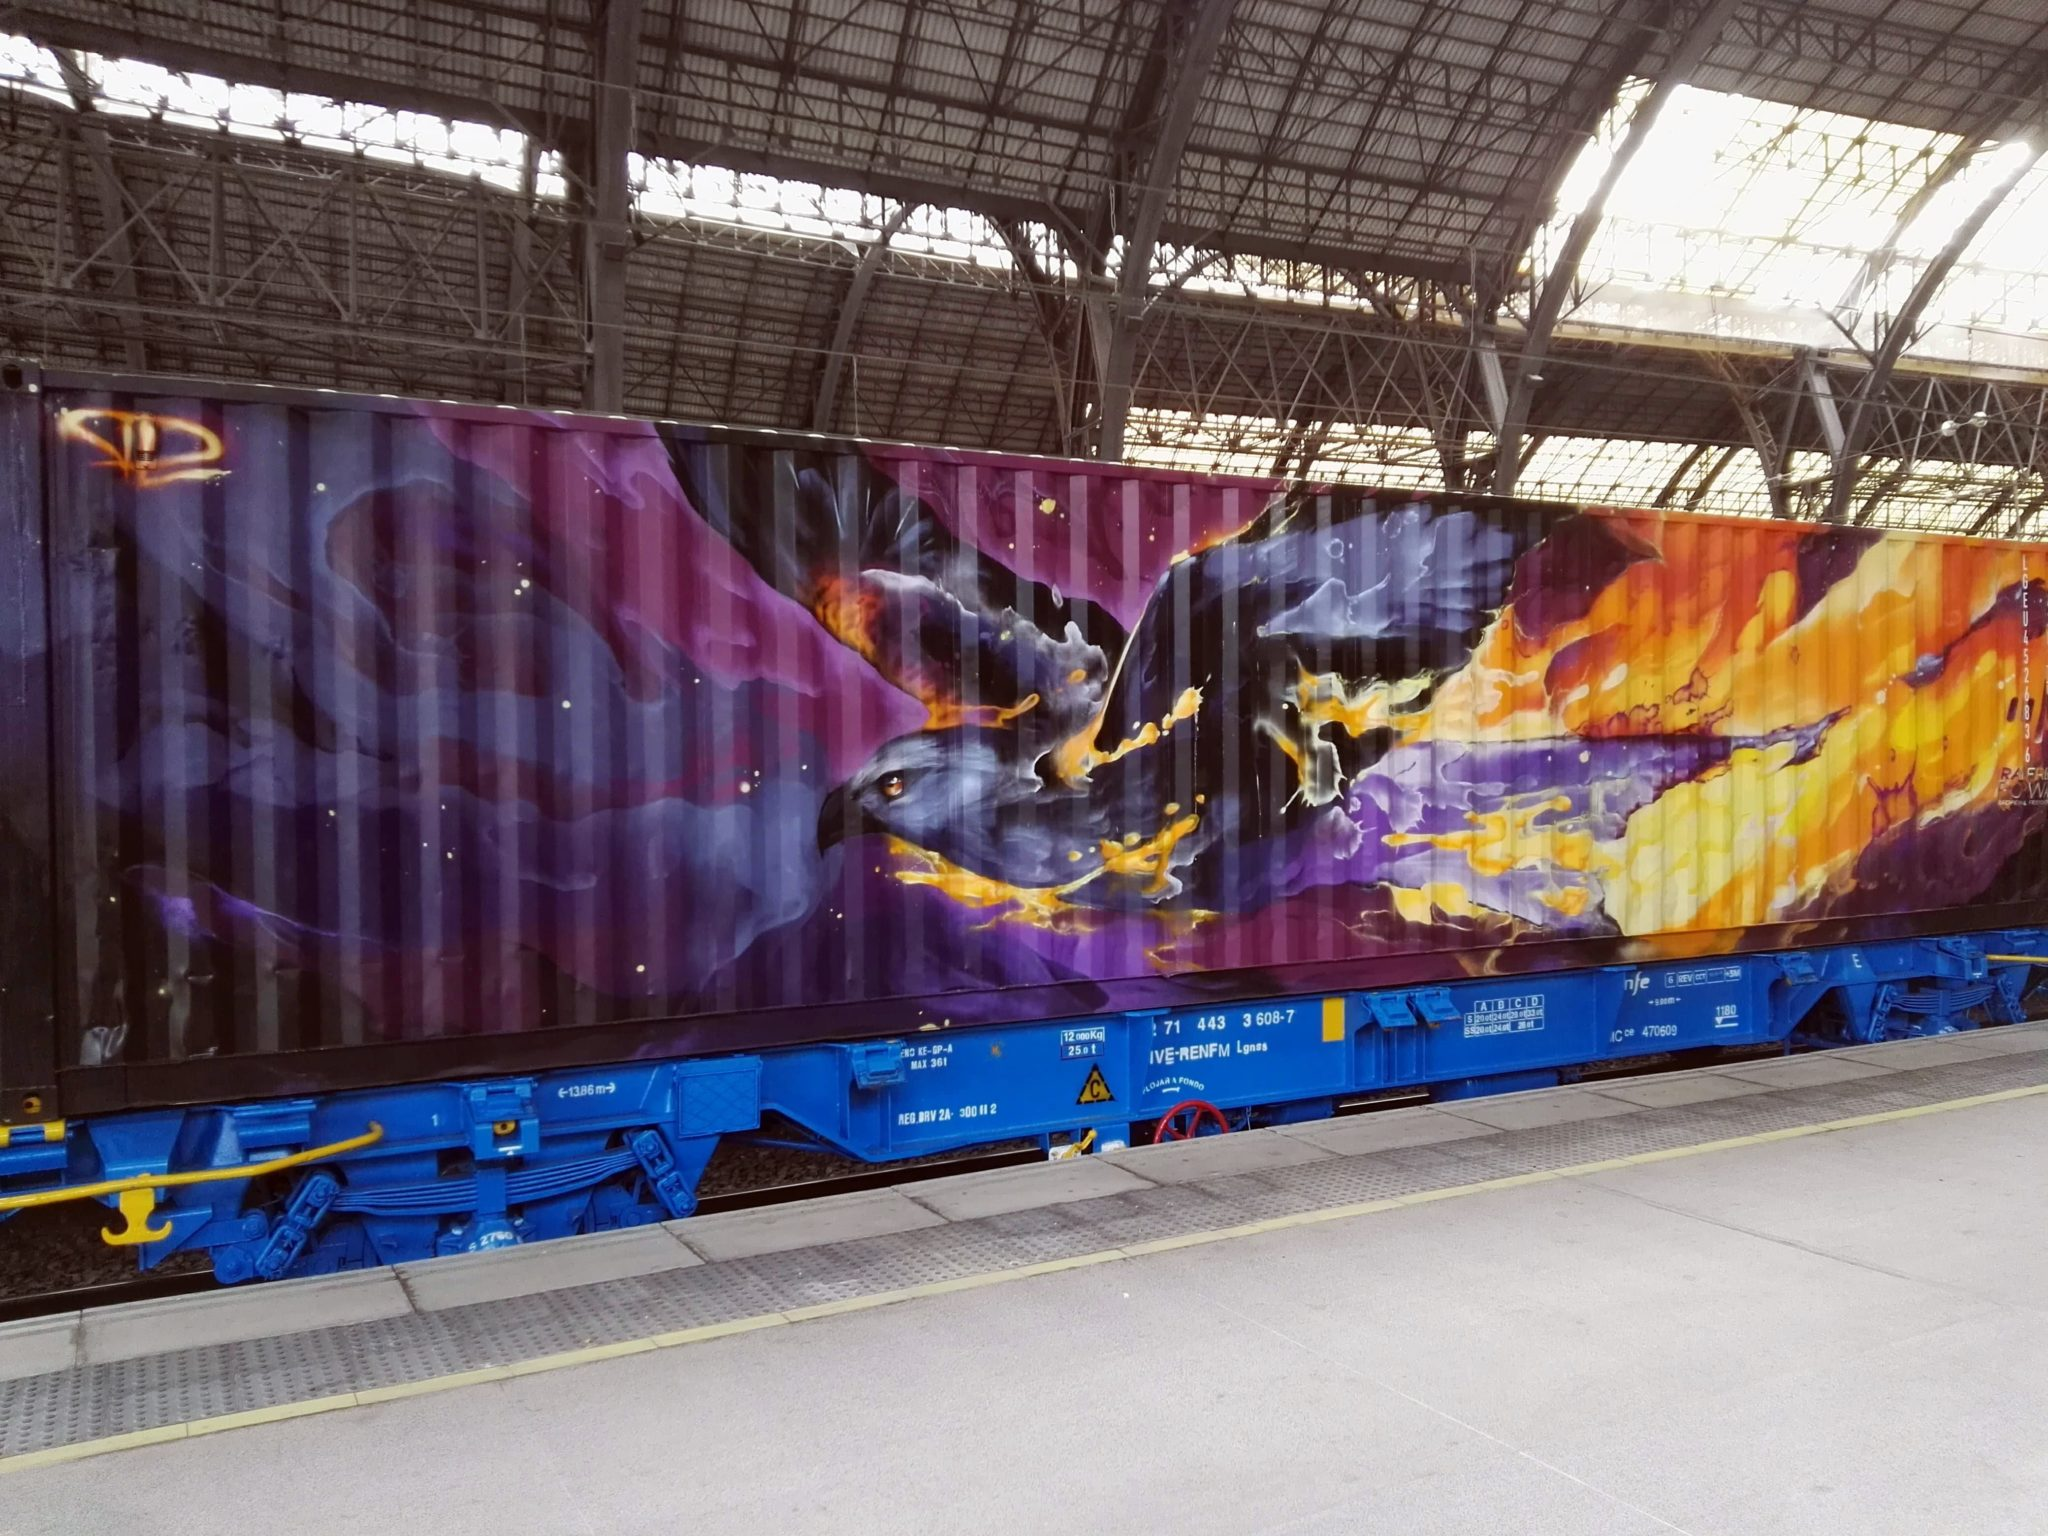 Daniel Mac Lloyd Noah's train street art